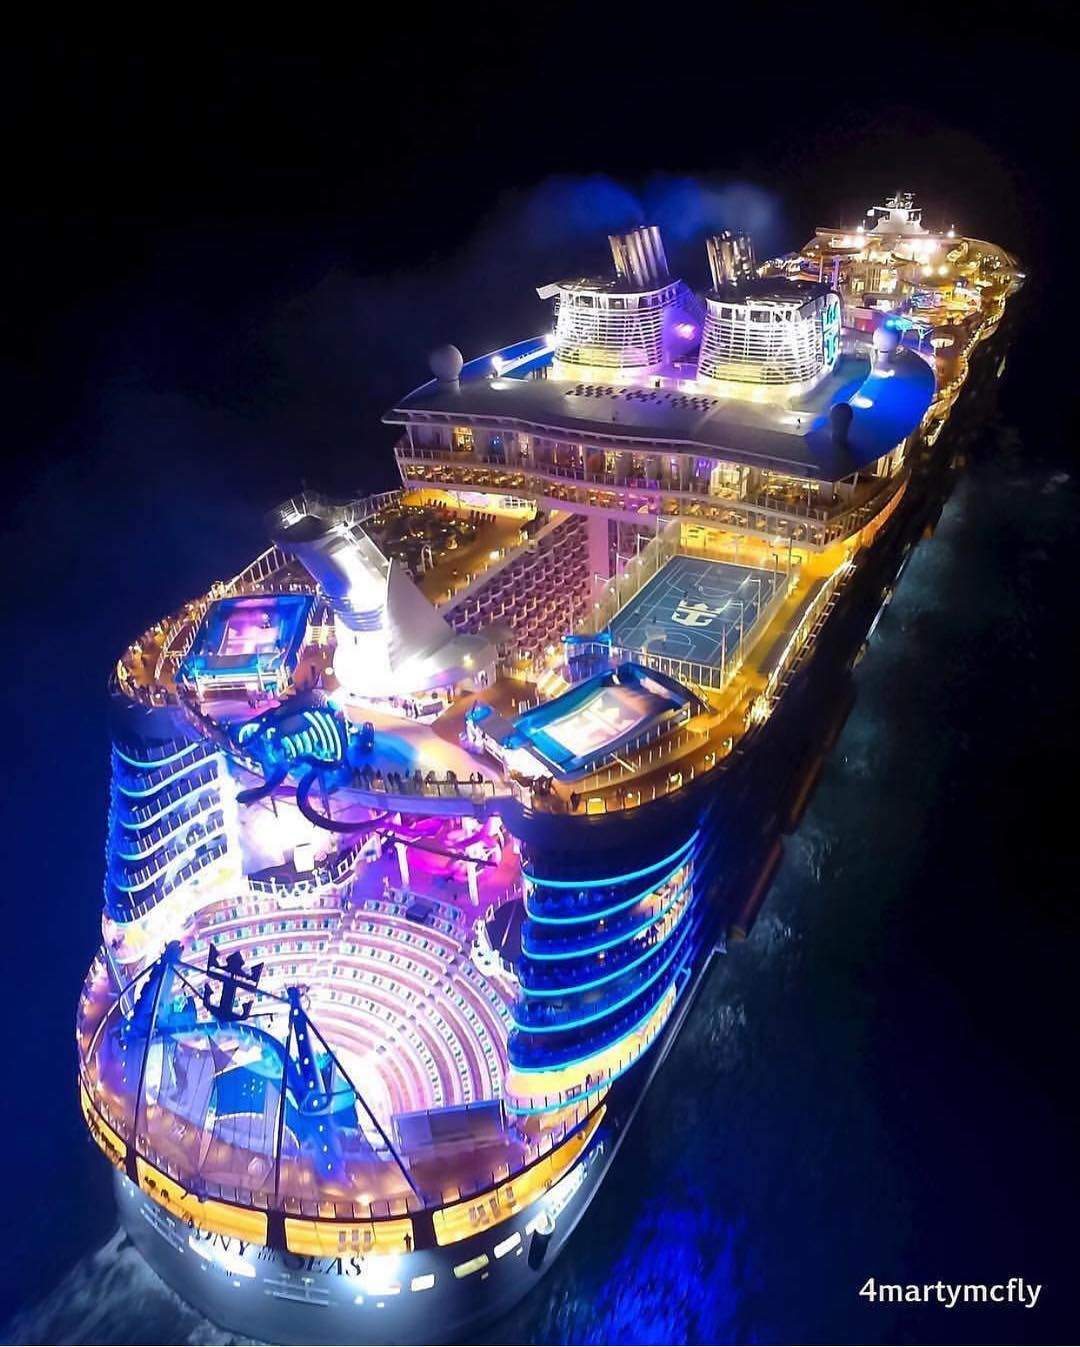 Billionaires Luxuries On Instagram What A Beautiful Night Time Picture Of A Cruise Ship Via Cruise Ship Pictures Biggest Cruise Ship Cruise Party